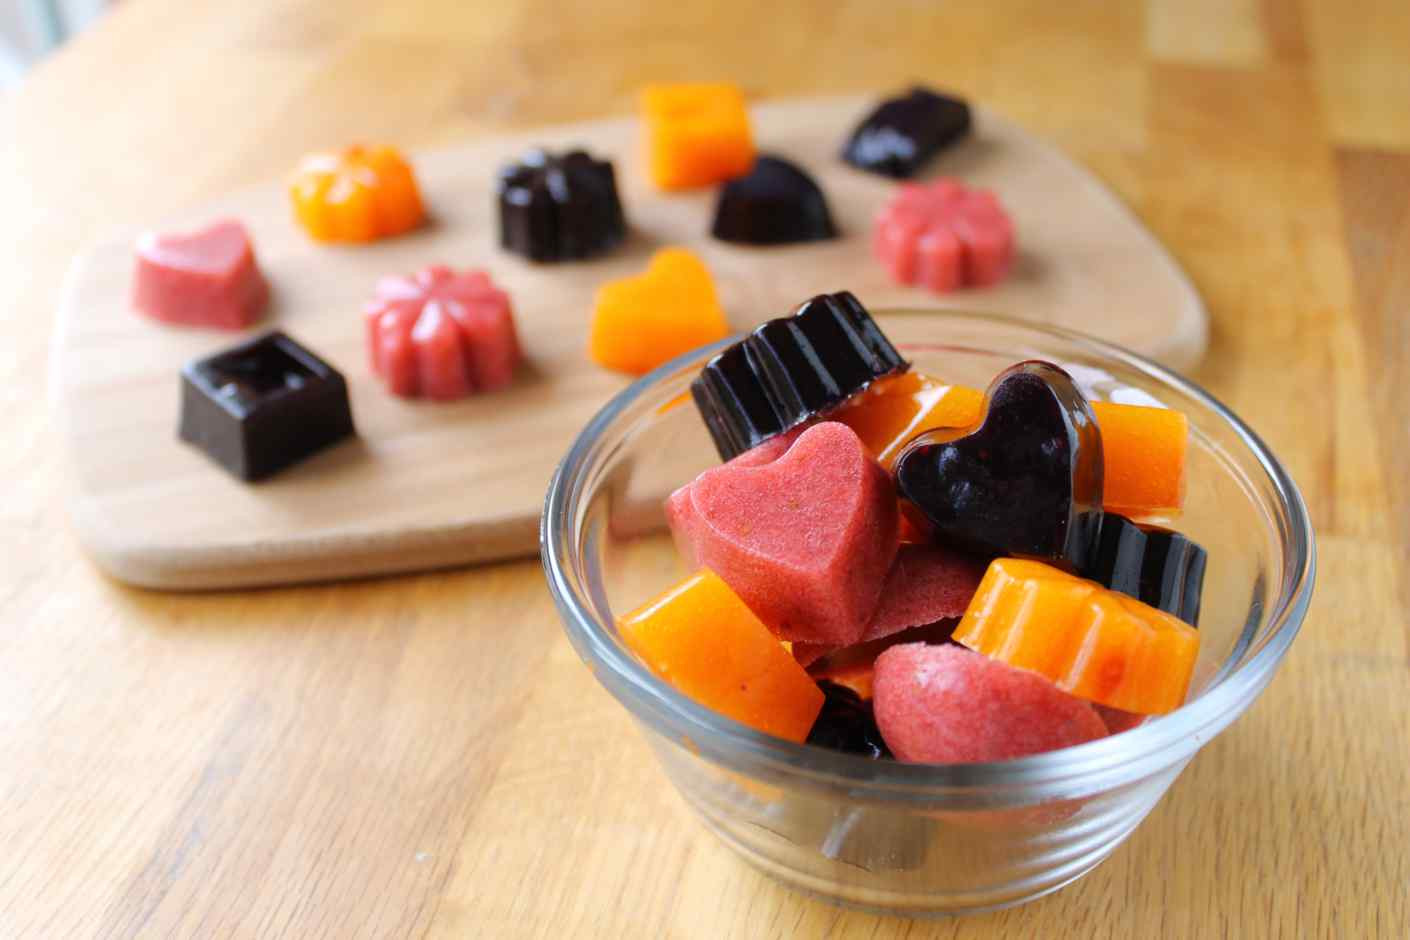 Snacks That Are Healthy  11 Recipes to Make Your Favorite Snacks from the 90s at